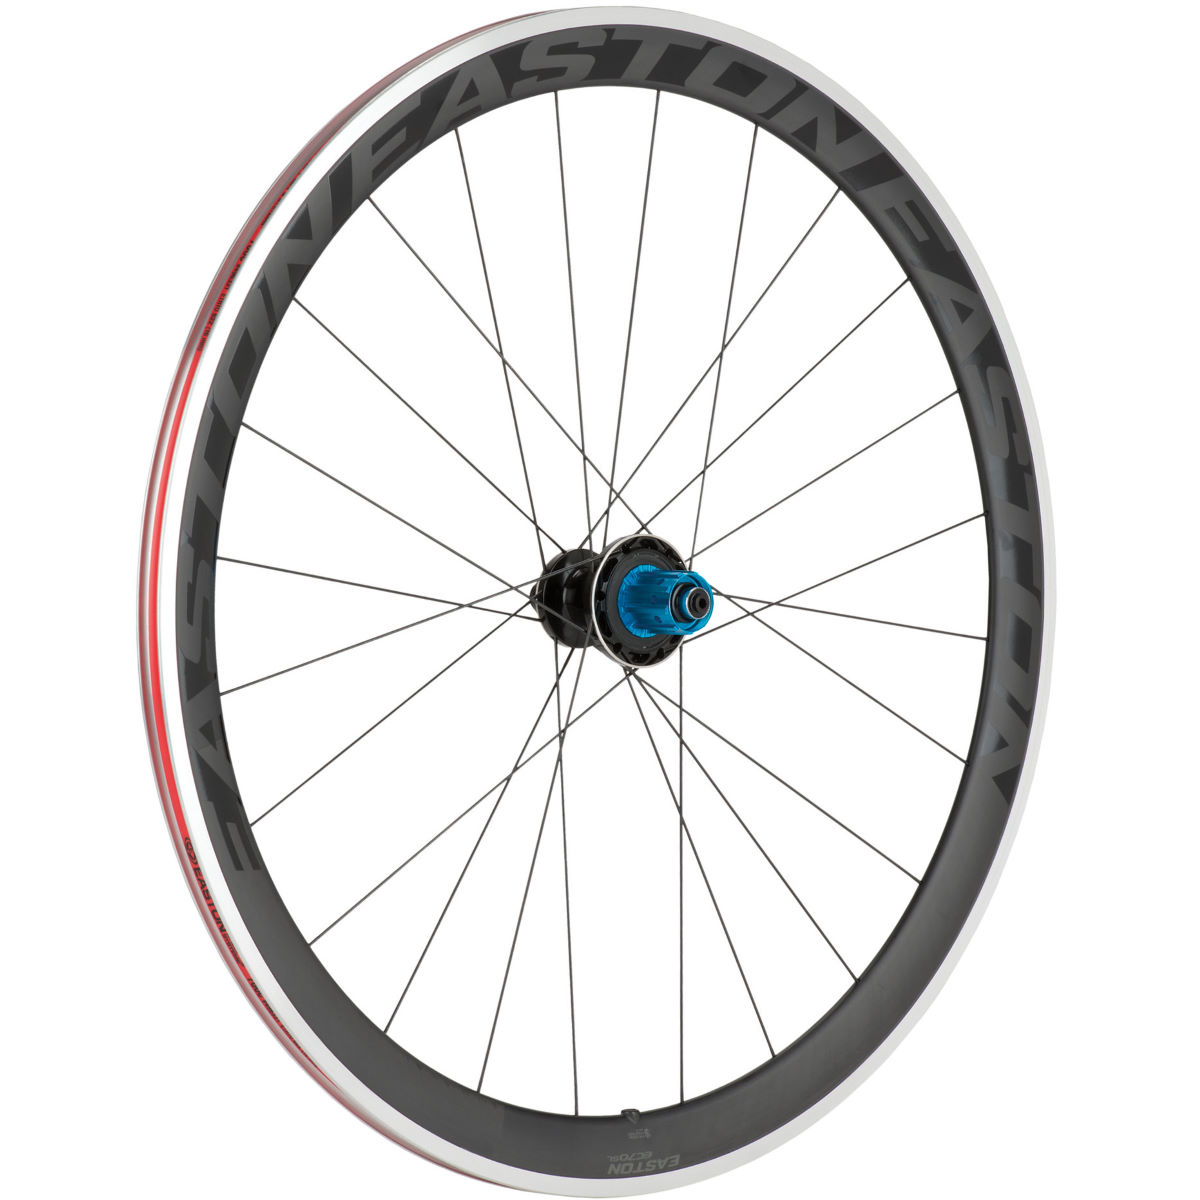 Easton EC70 SL Road Rear Wheel - Ruedas de competición